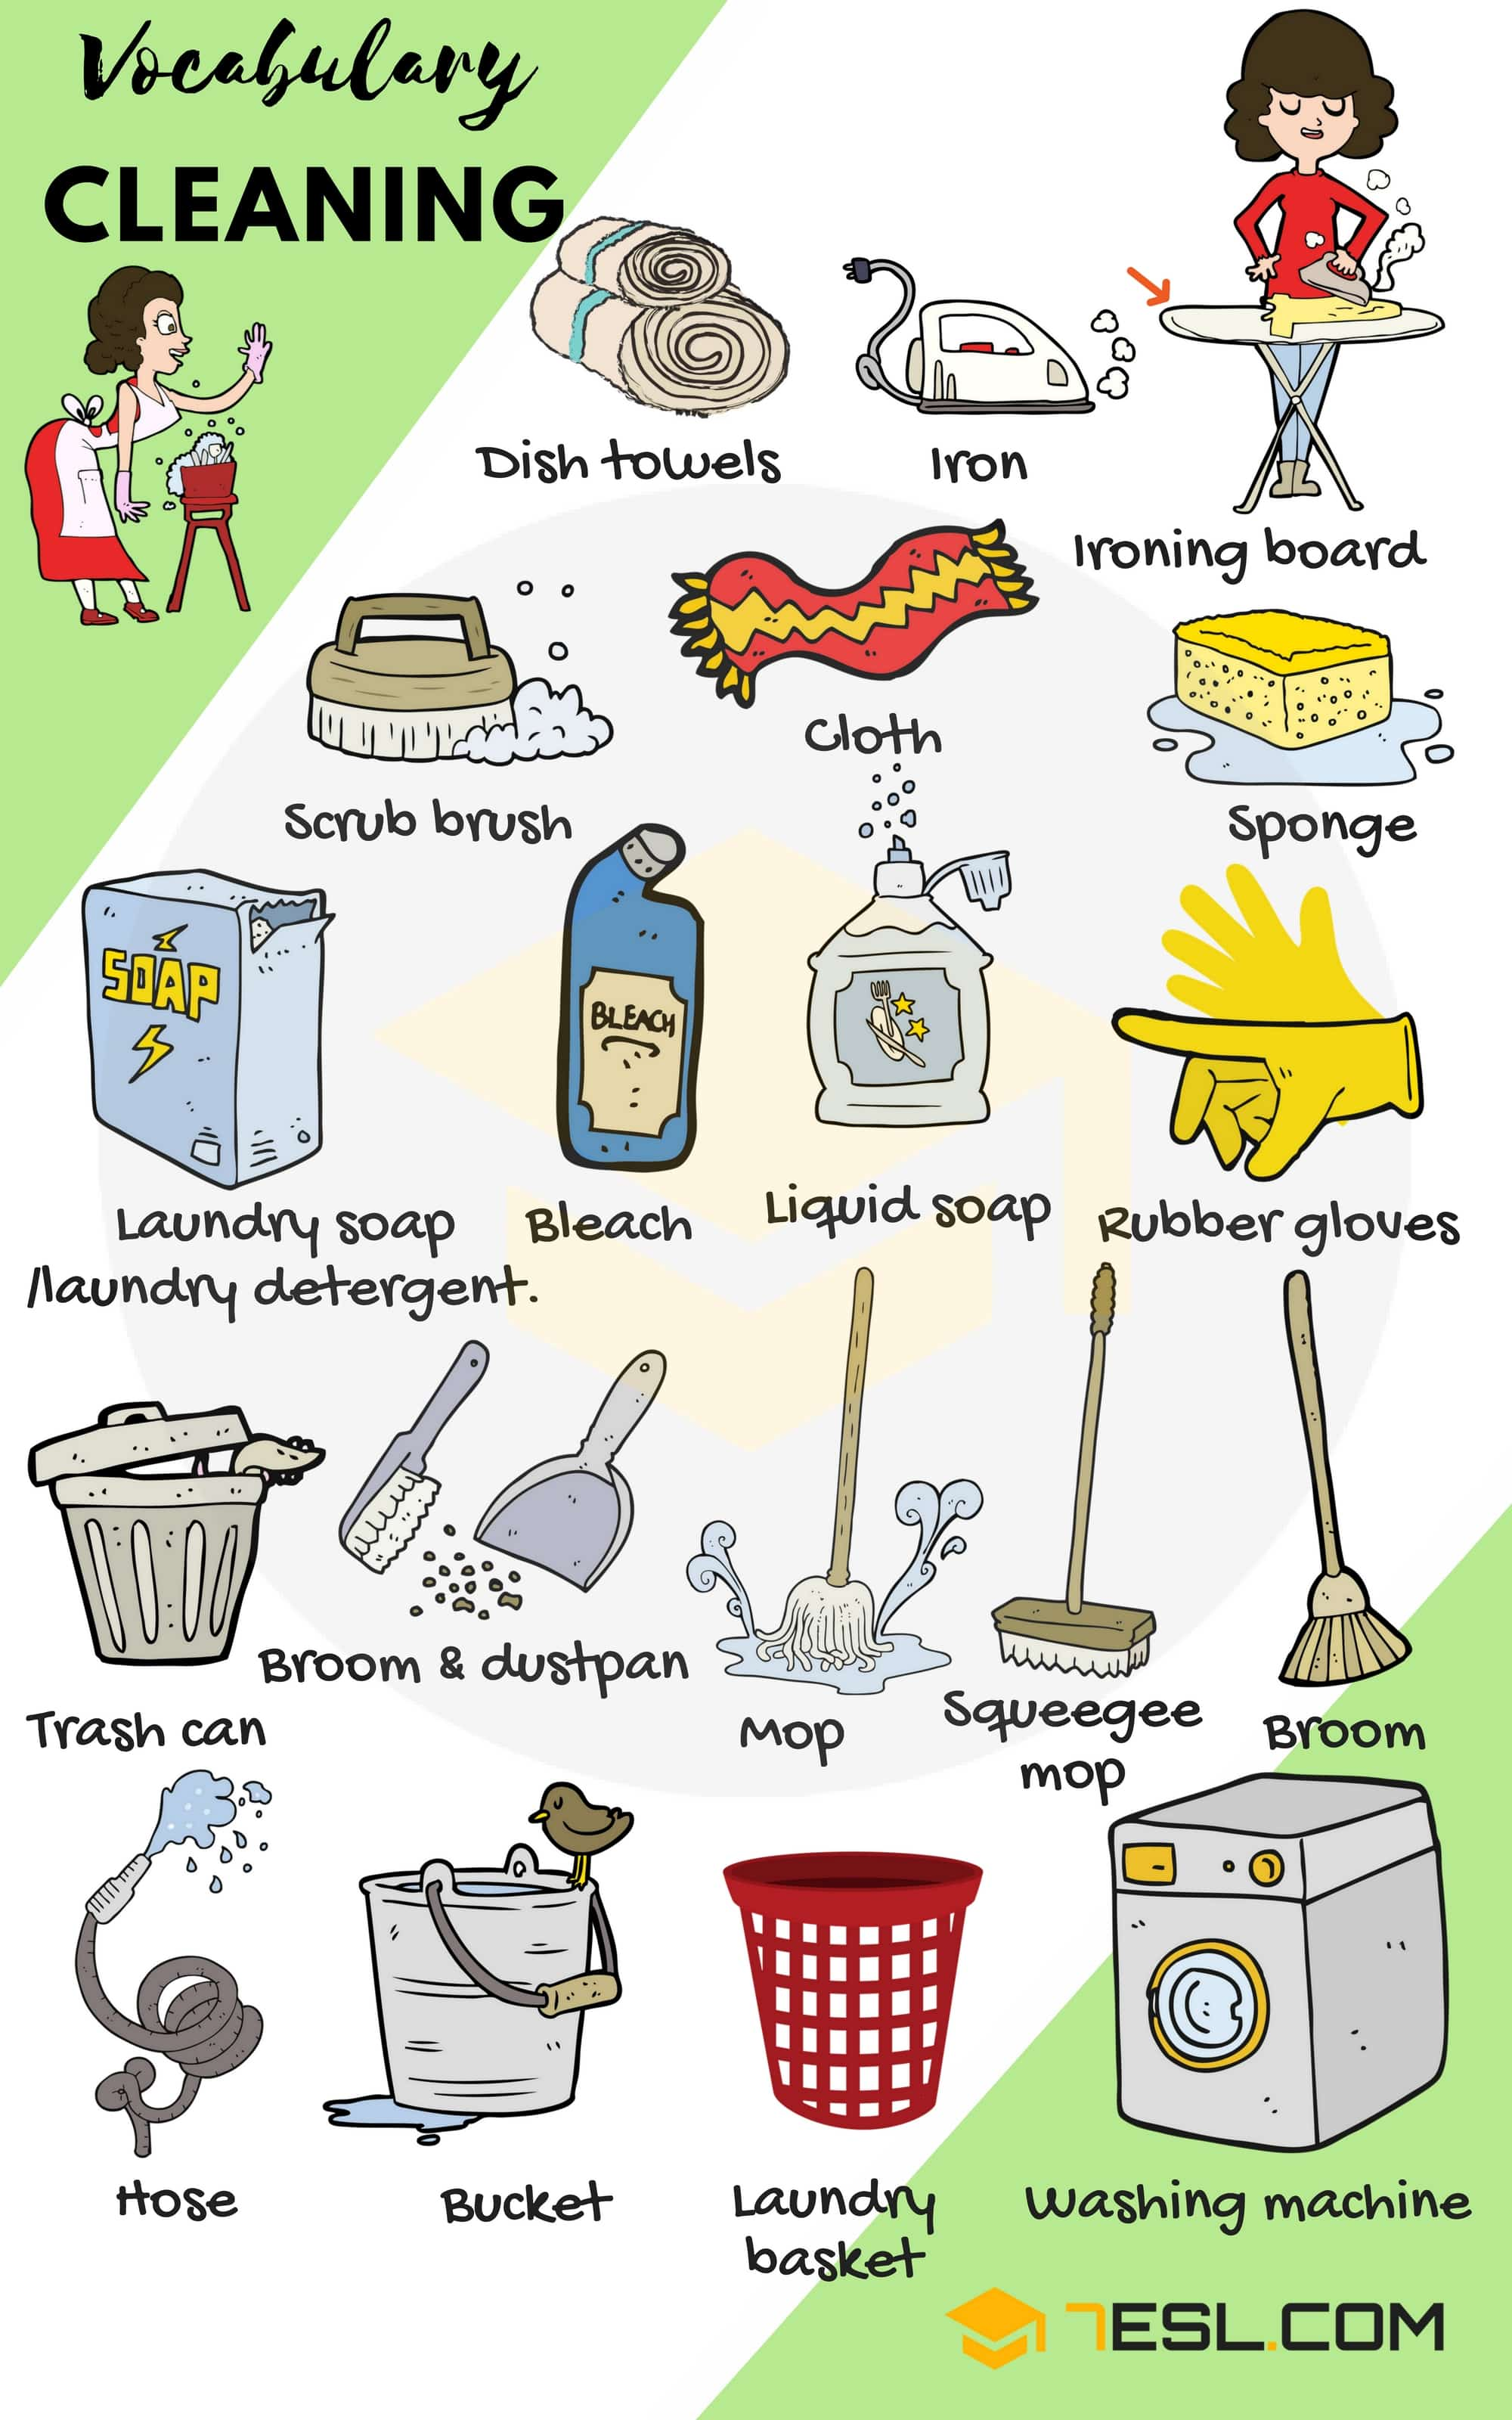 Cleaning Supplies: List of House Cleaning & Laundry Vocabulary